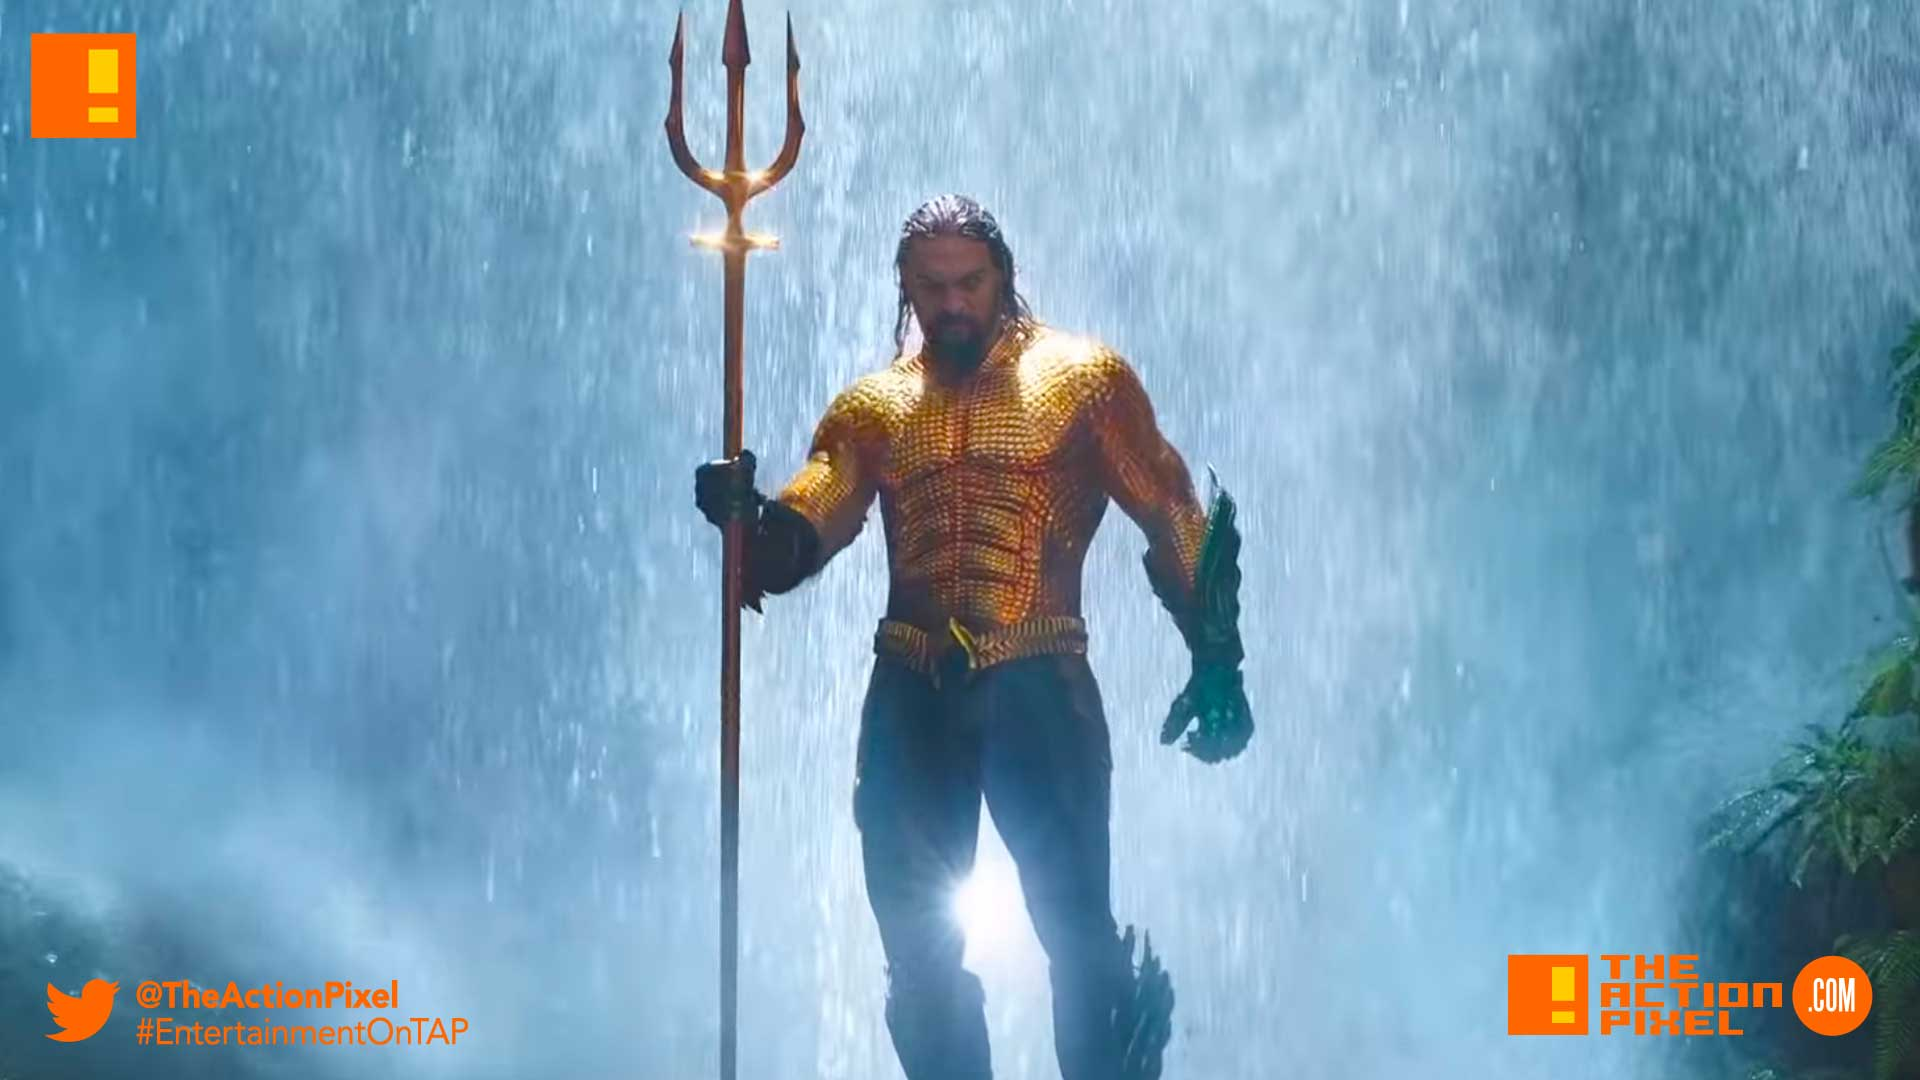 aquaman, dc comics, the action pixel, entertainment on tap, poster , Orm, queen atlanna, black manta, james wan, the action pixel, entertainment on tap, jason momoa, aquaman, arthur CURRY, dc comics, dc films, justice league, first look,dc comics, wb pictures, warner bros, mera, amber heard,trident, poster art